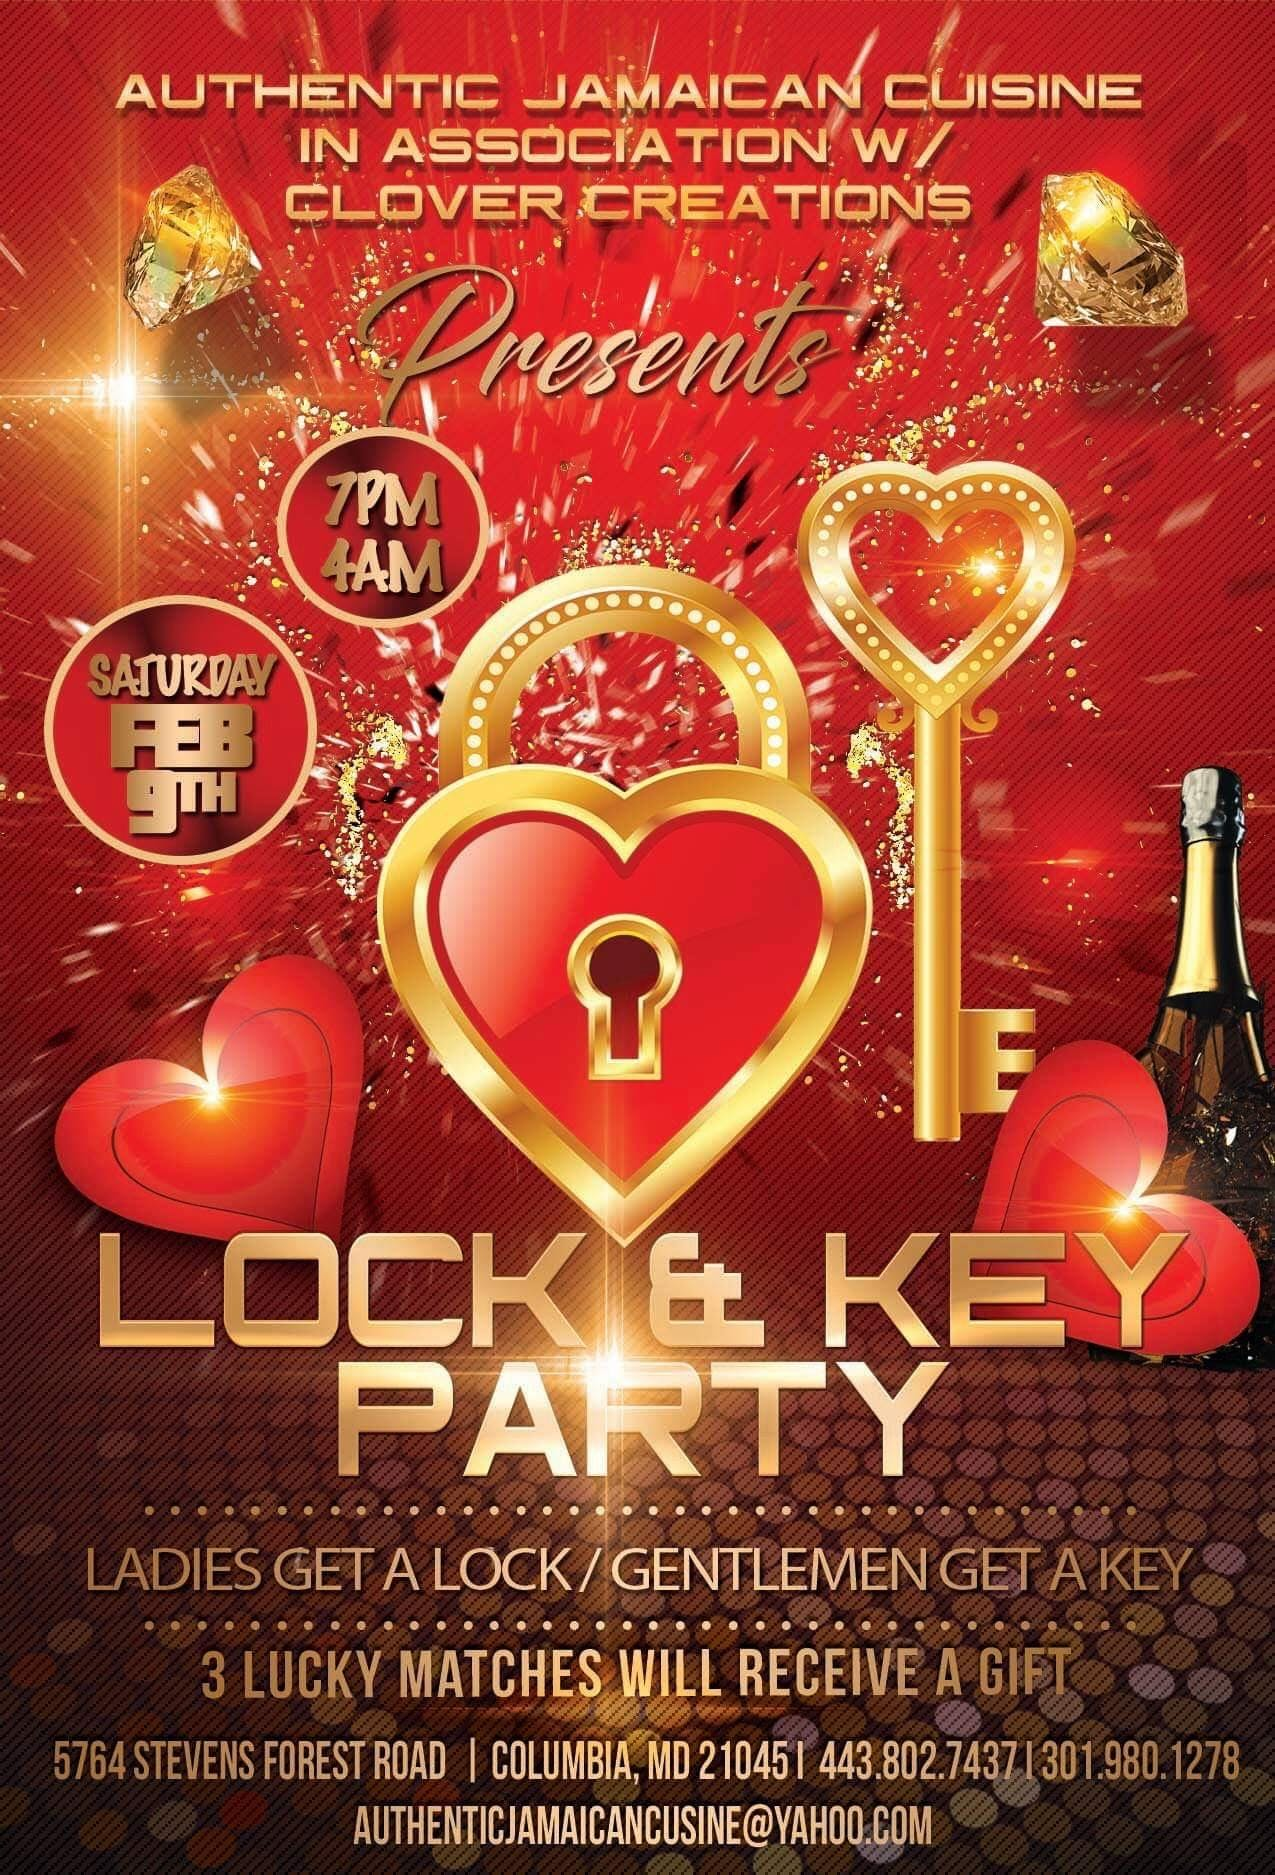 what is a lock and key party